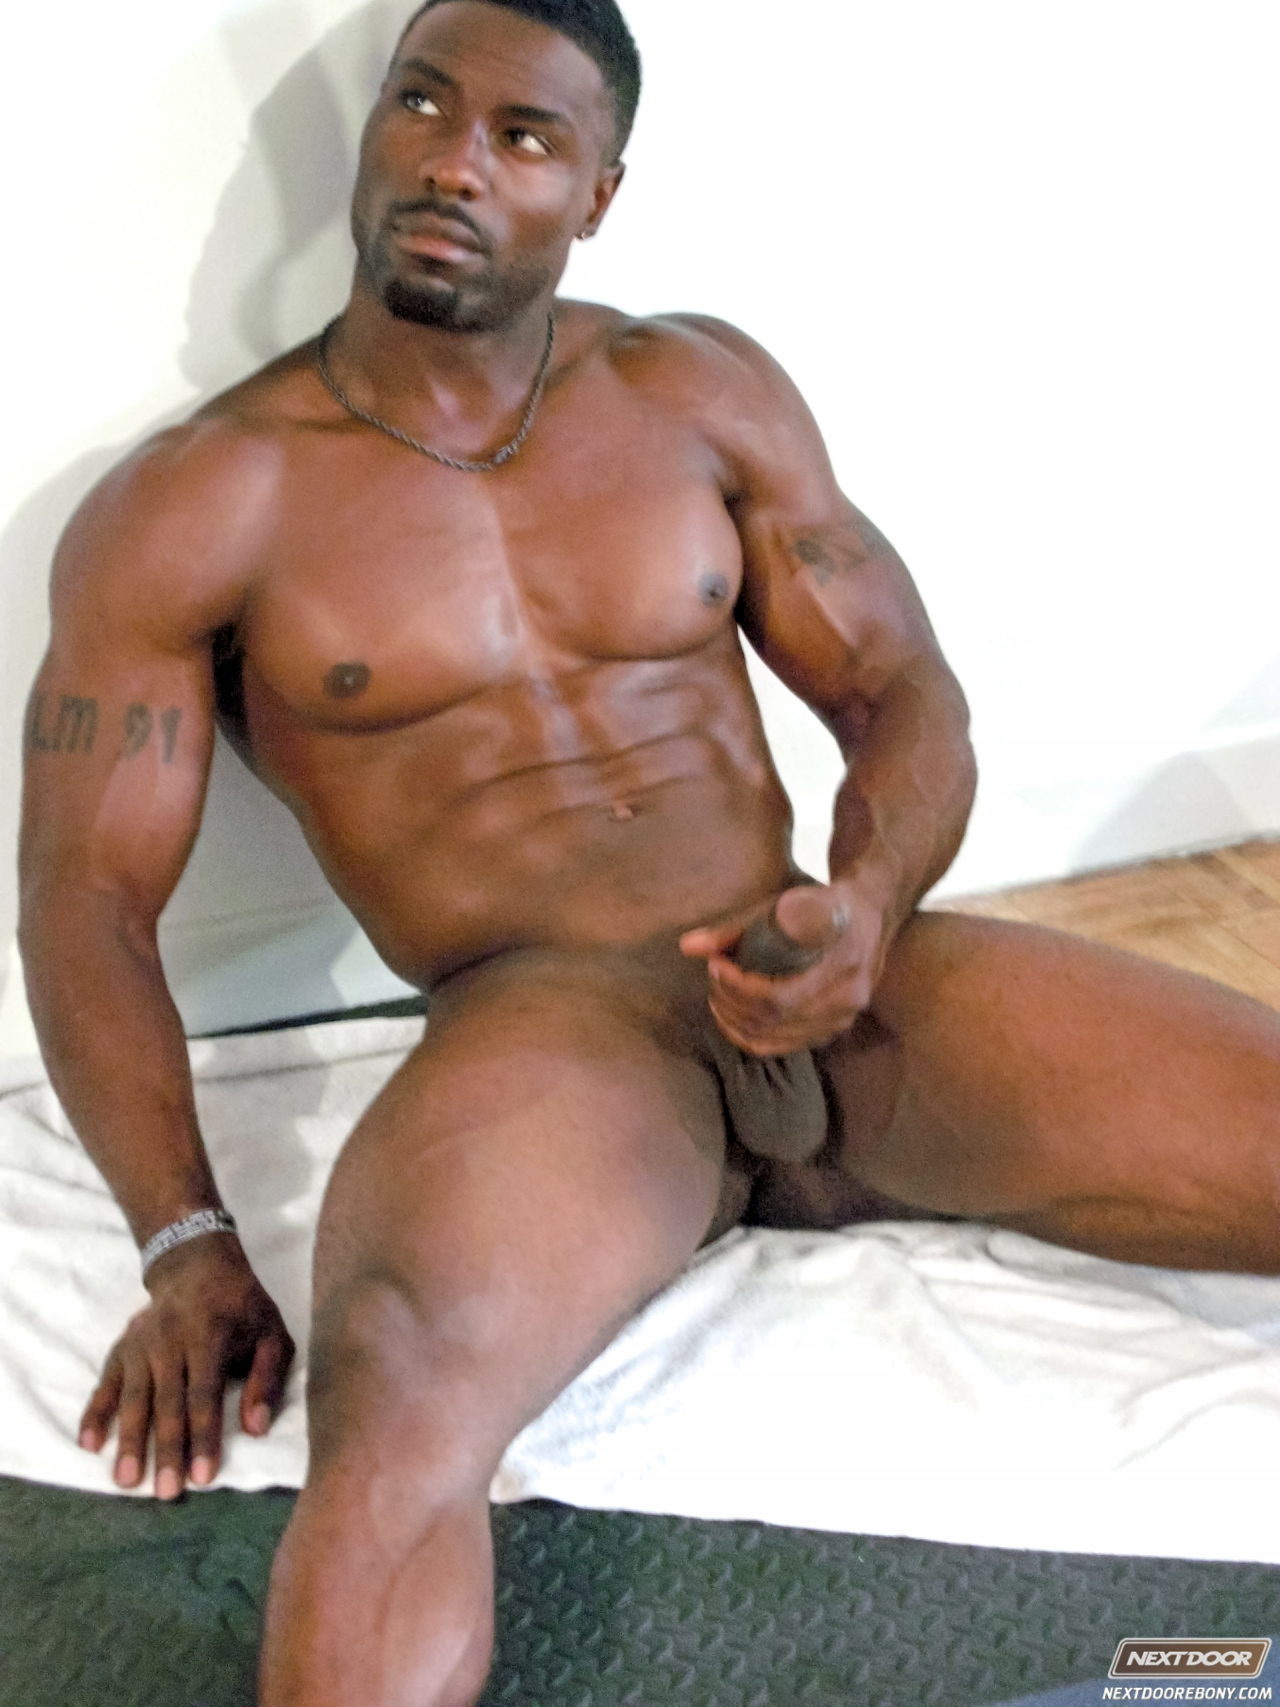 Gay black men porn videos